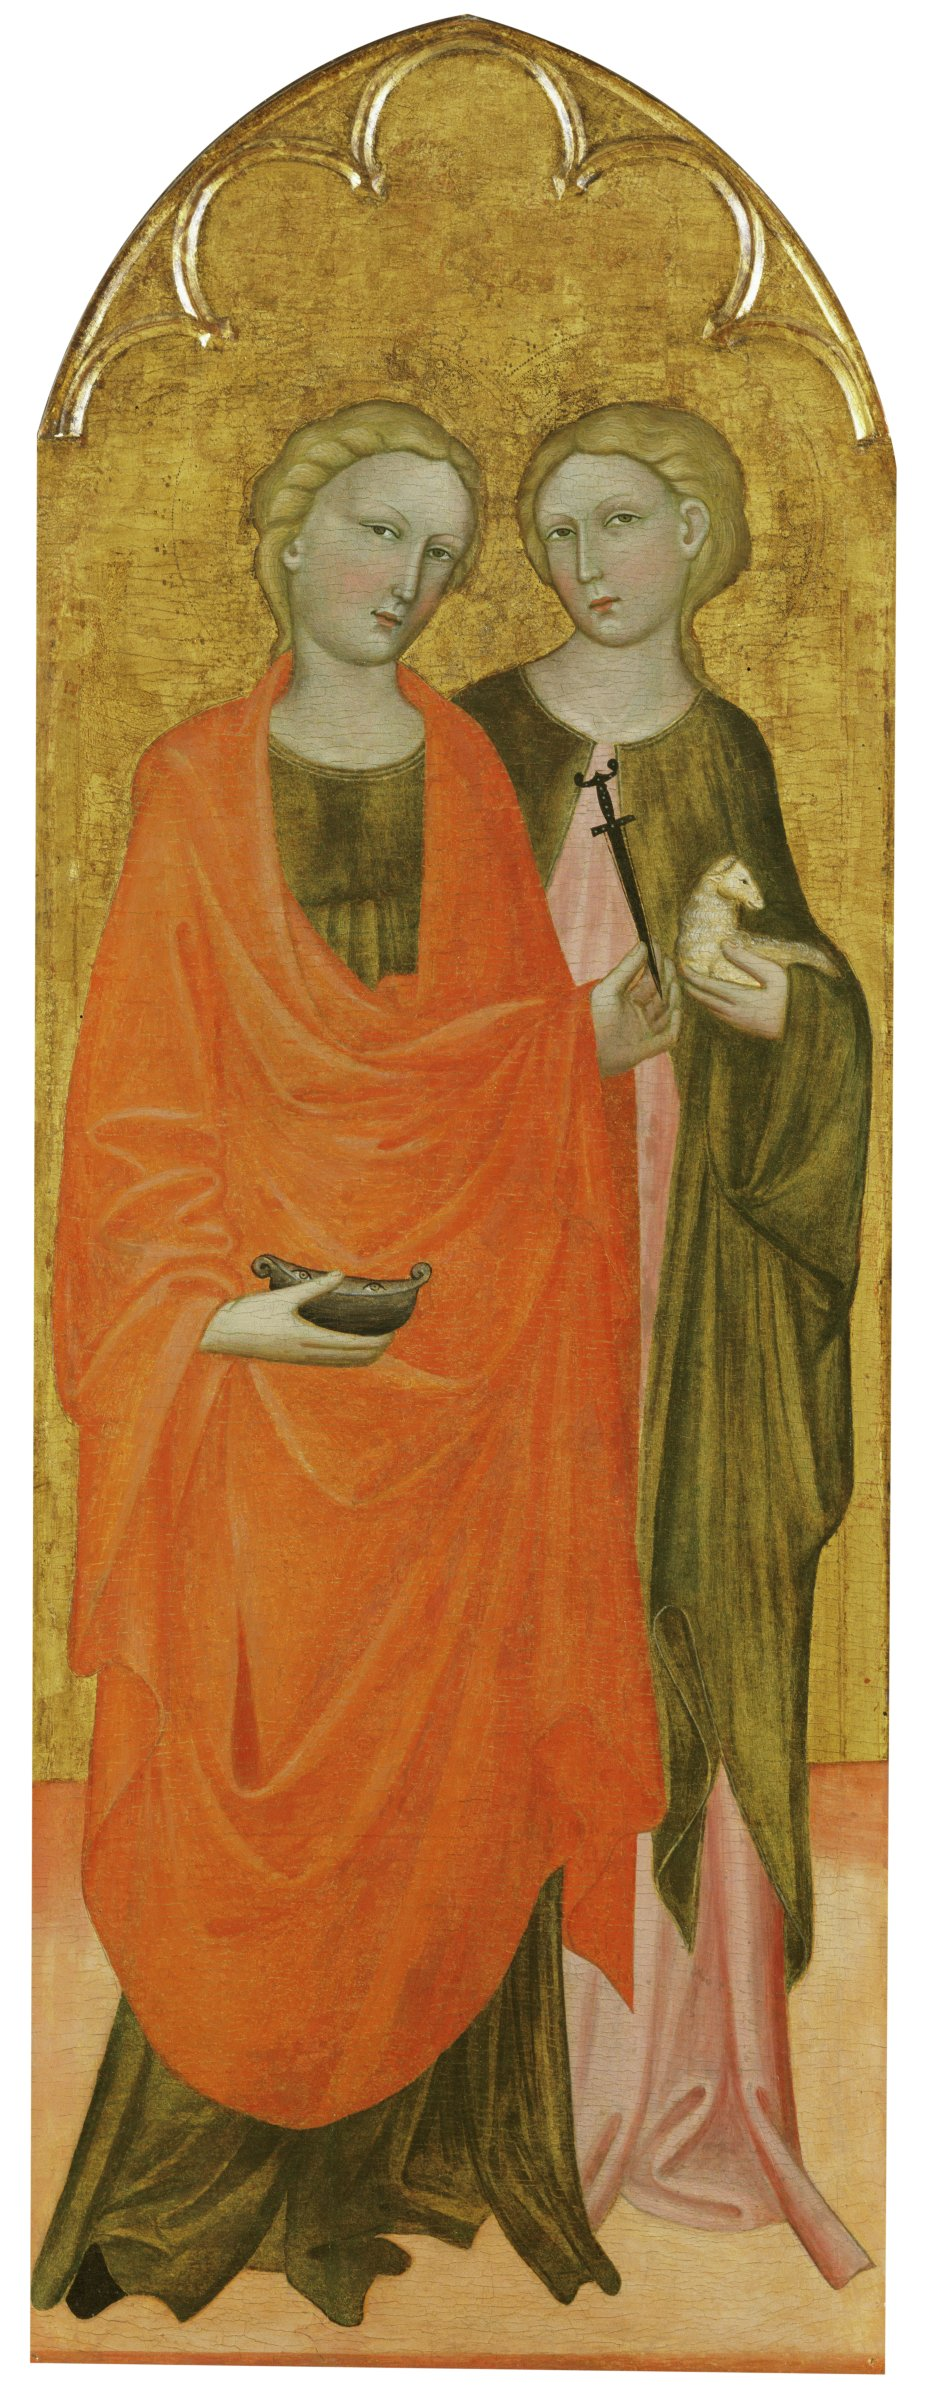 """Saint Lucy stands holding a dagger in her left hand, a symbol of her martyrdom, and in her right she holds a bowl with her two eyes. According to legend, she plucked out her eyes but they were miraculously restored. Agnes stands behind her, holding a lamb, a reference to her name, which means """"lamb"""" in Latin."""